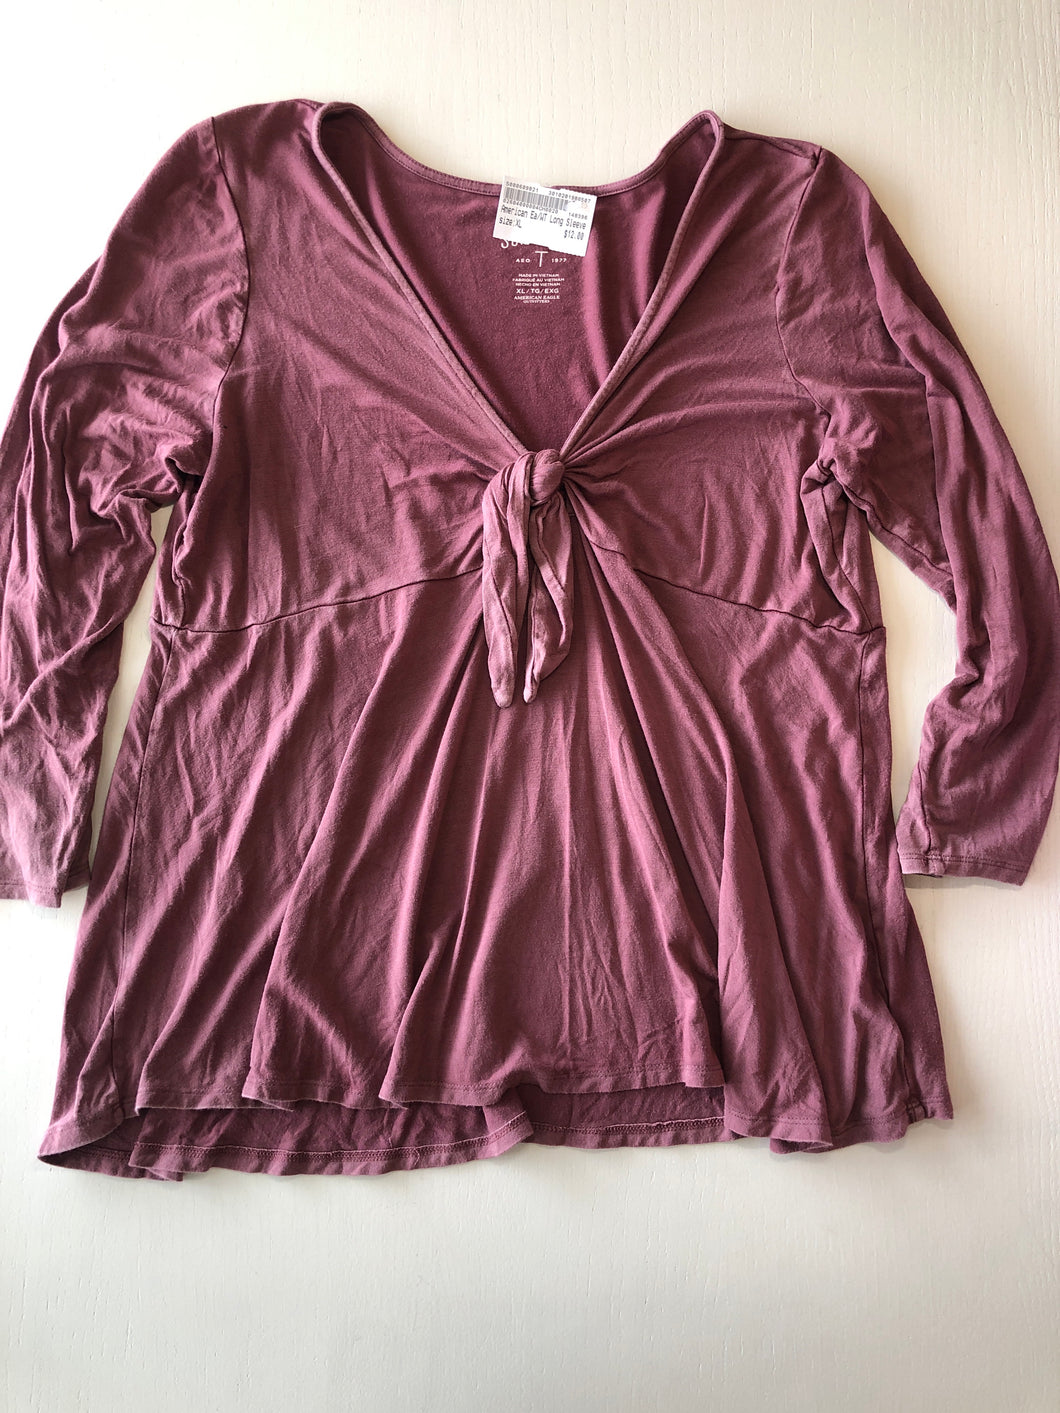 Gently Used Women's American Eagle Top Size XL